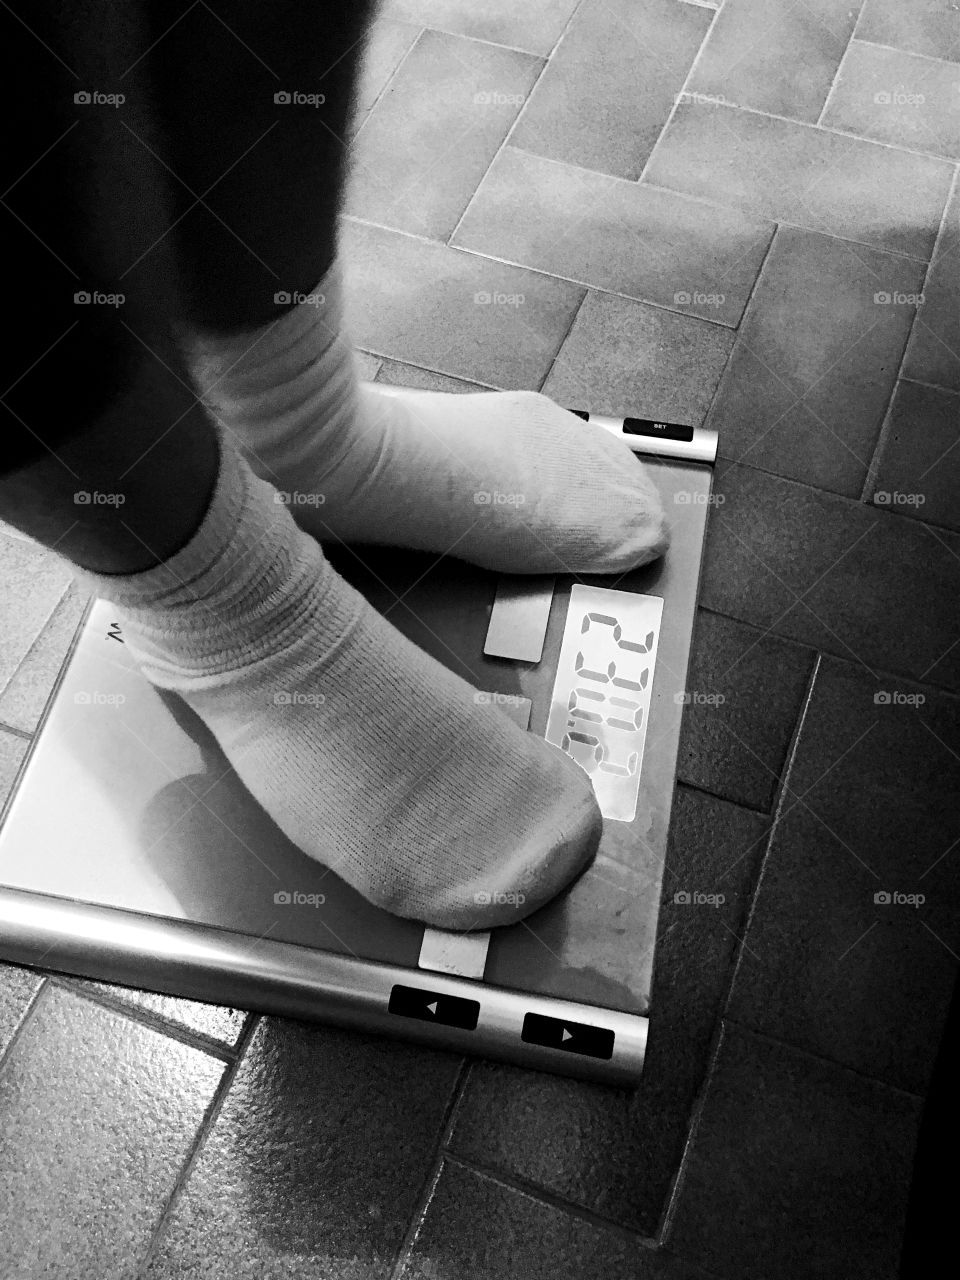 First day on a diet...feet on a scale with weight in imperial pounds